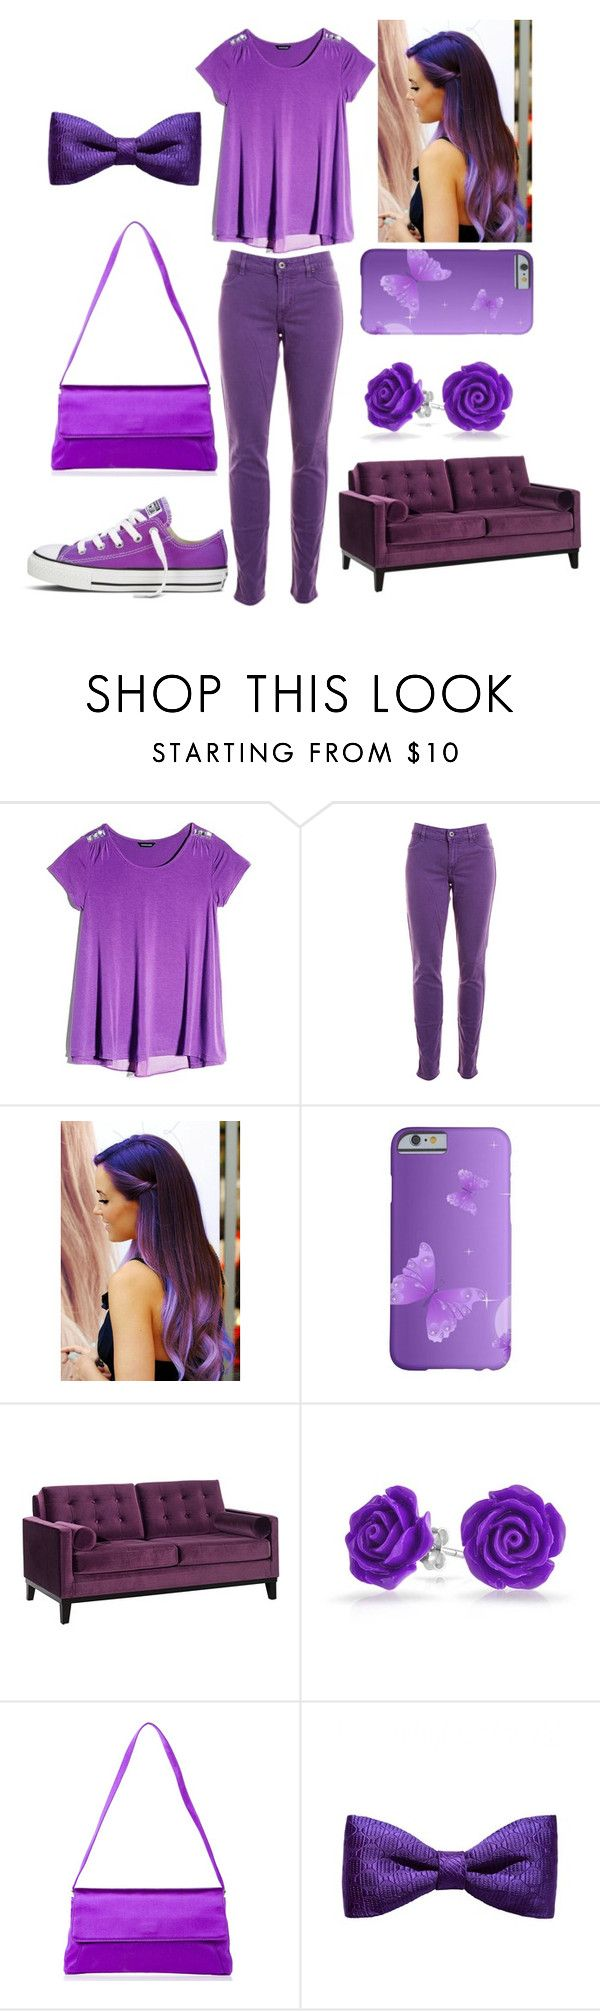 """Purple daze"" by themightytiff ❤ liked on Polyvore featuring GUESS by Marciano, Rich & Skinny, Armen Living, Bling Jewelry and ZuZu Kim"